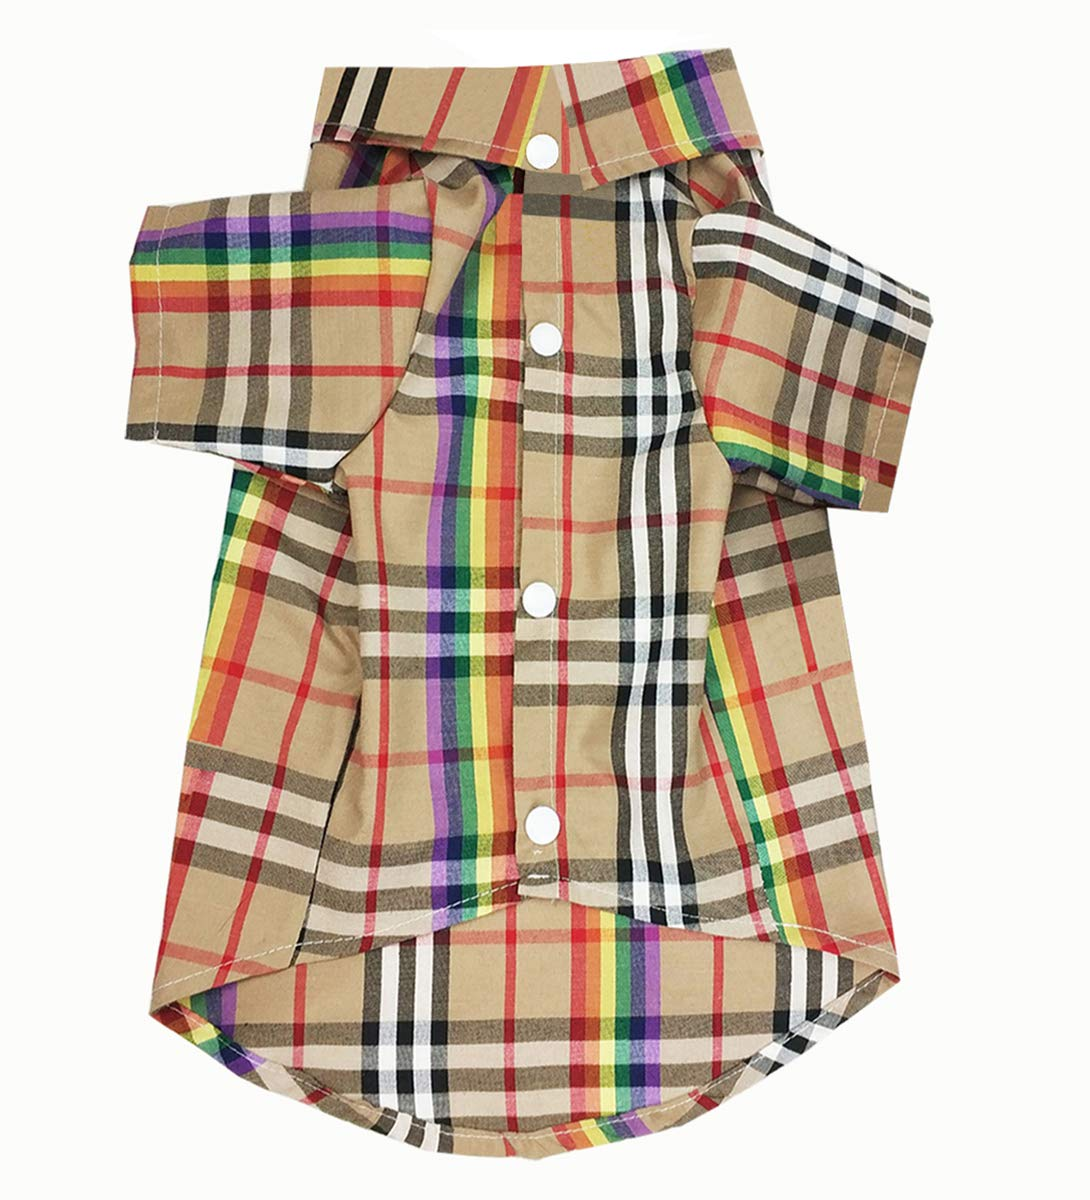 HOODDEAL Pet Clothes Casual Classic Dog Short Sleeve Plaid Button Up Woven Shirt Cozy Colorful and Khaki Dog Outfits Adorable Christmas Costumes for Small Medium Puppy (Khaki, XXL)